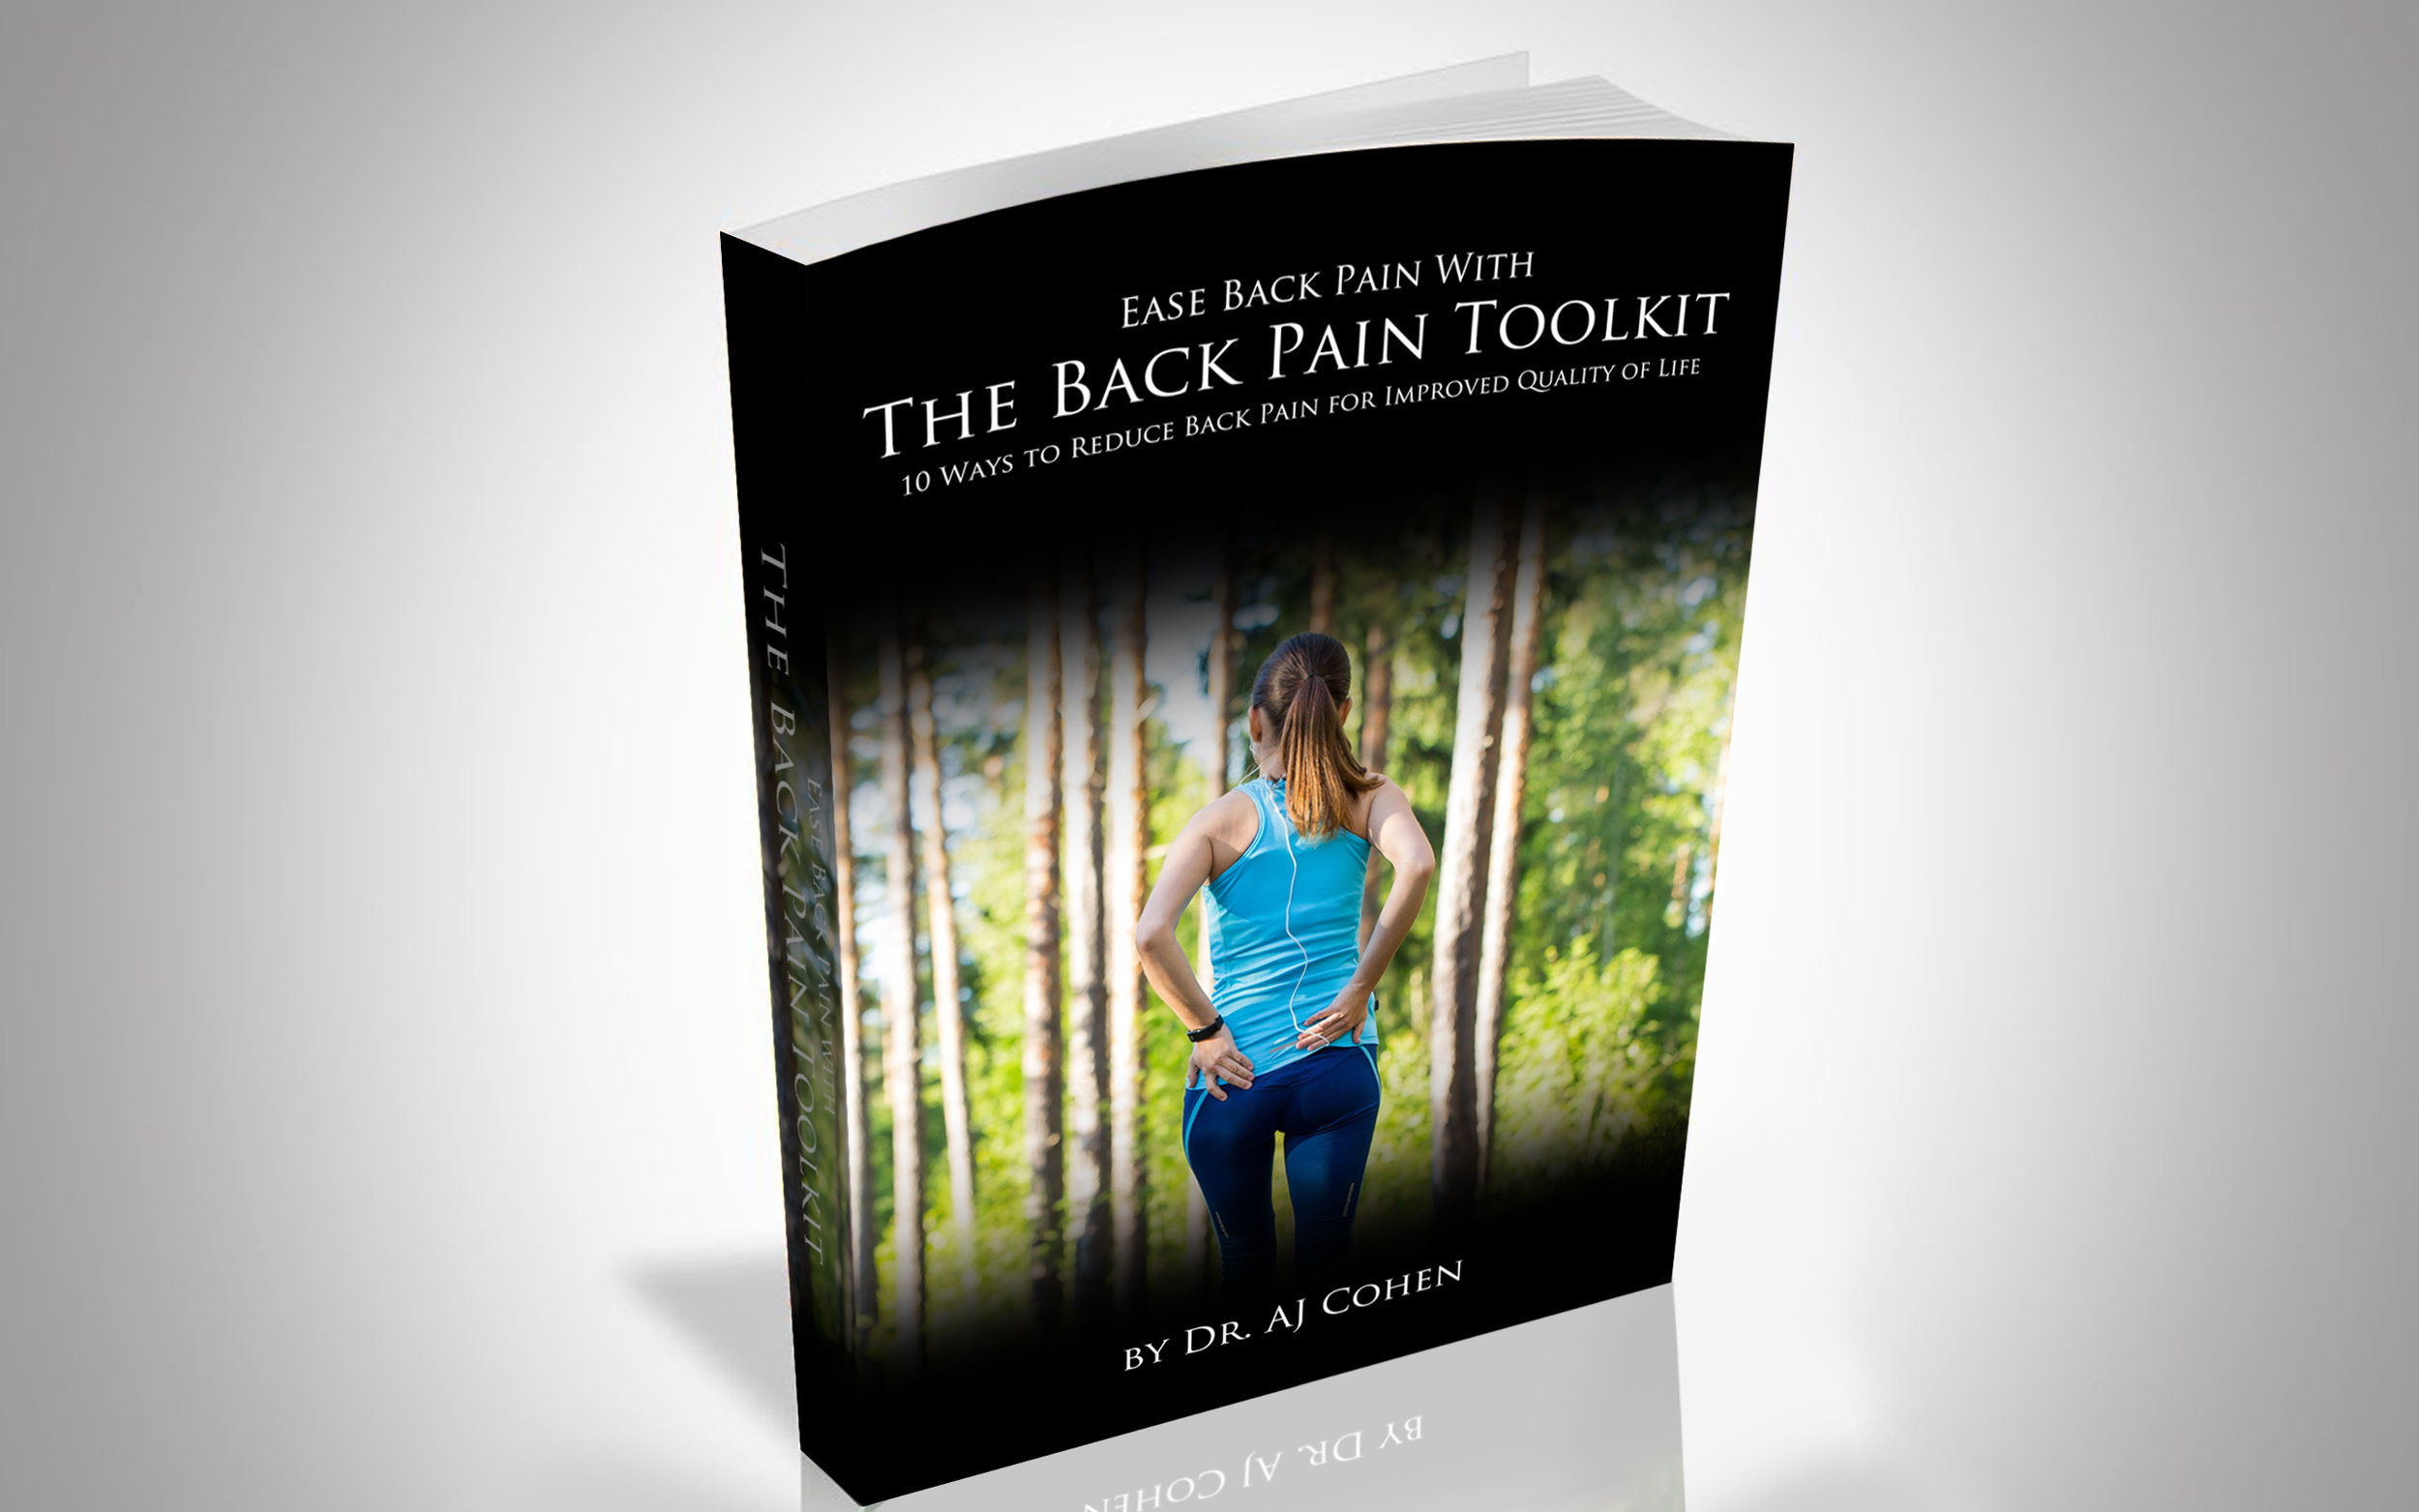 Ease Back Pain with: The Back Pain Toolkit - 10 Ways to Reduce Back Pain for Improved Quality of Life